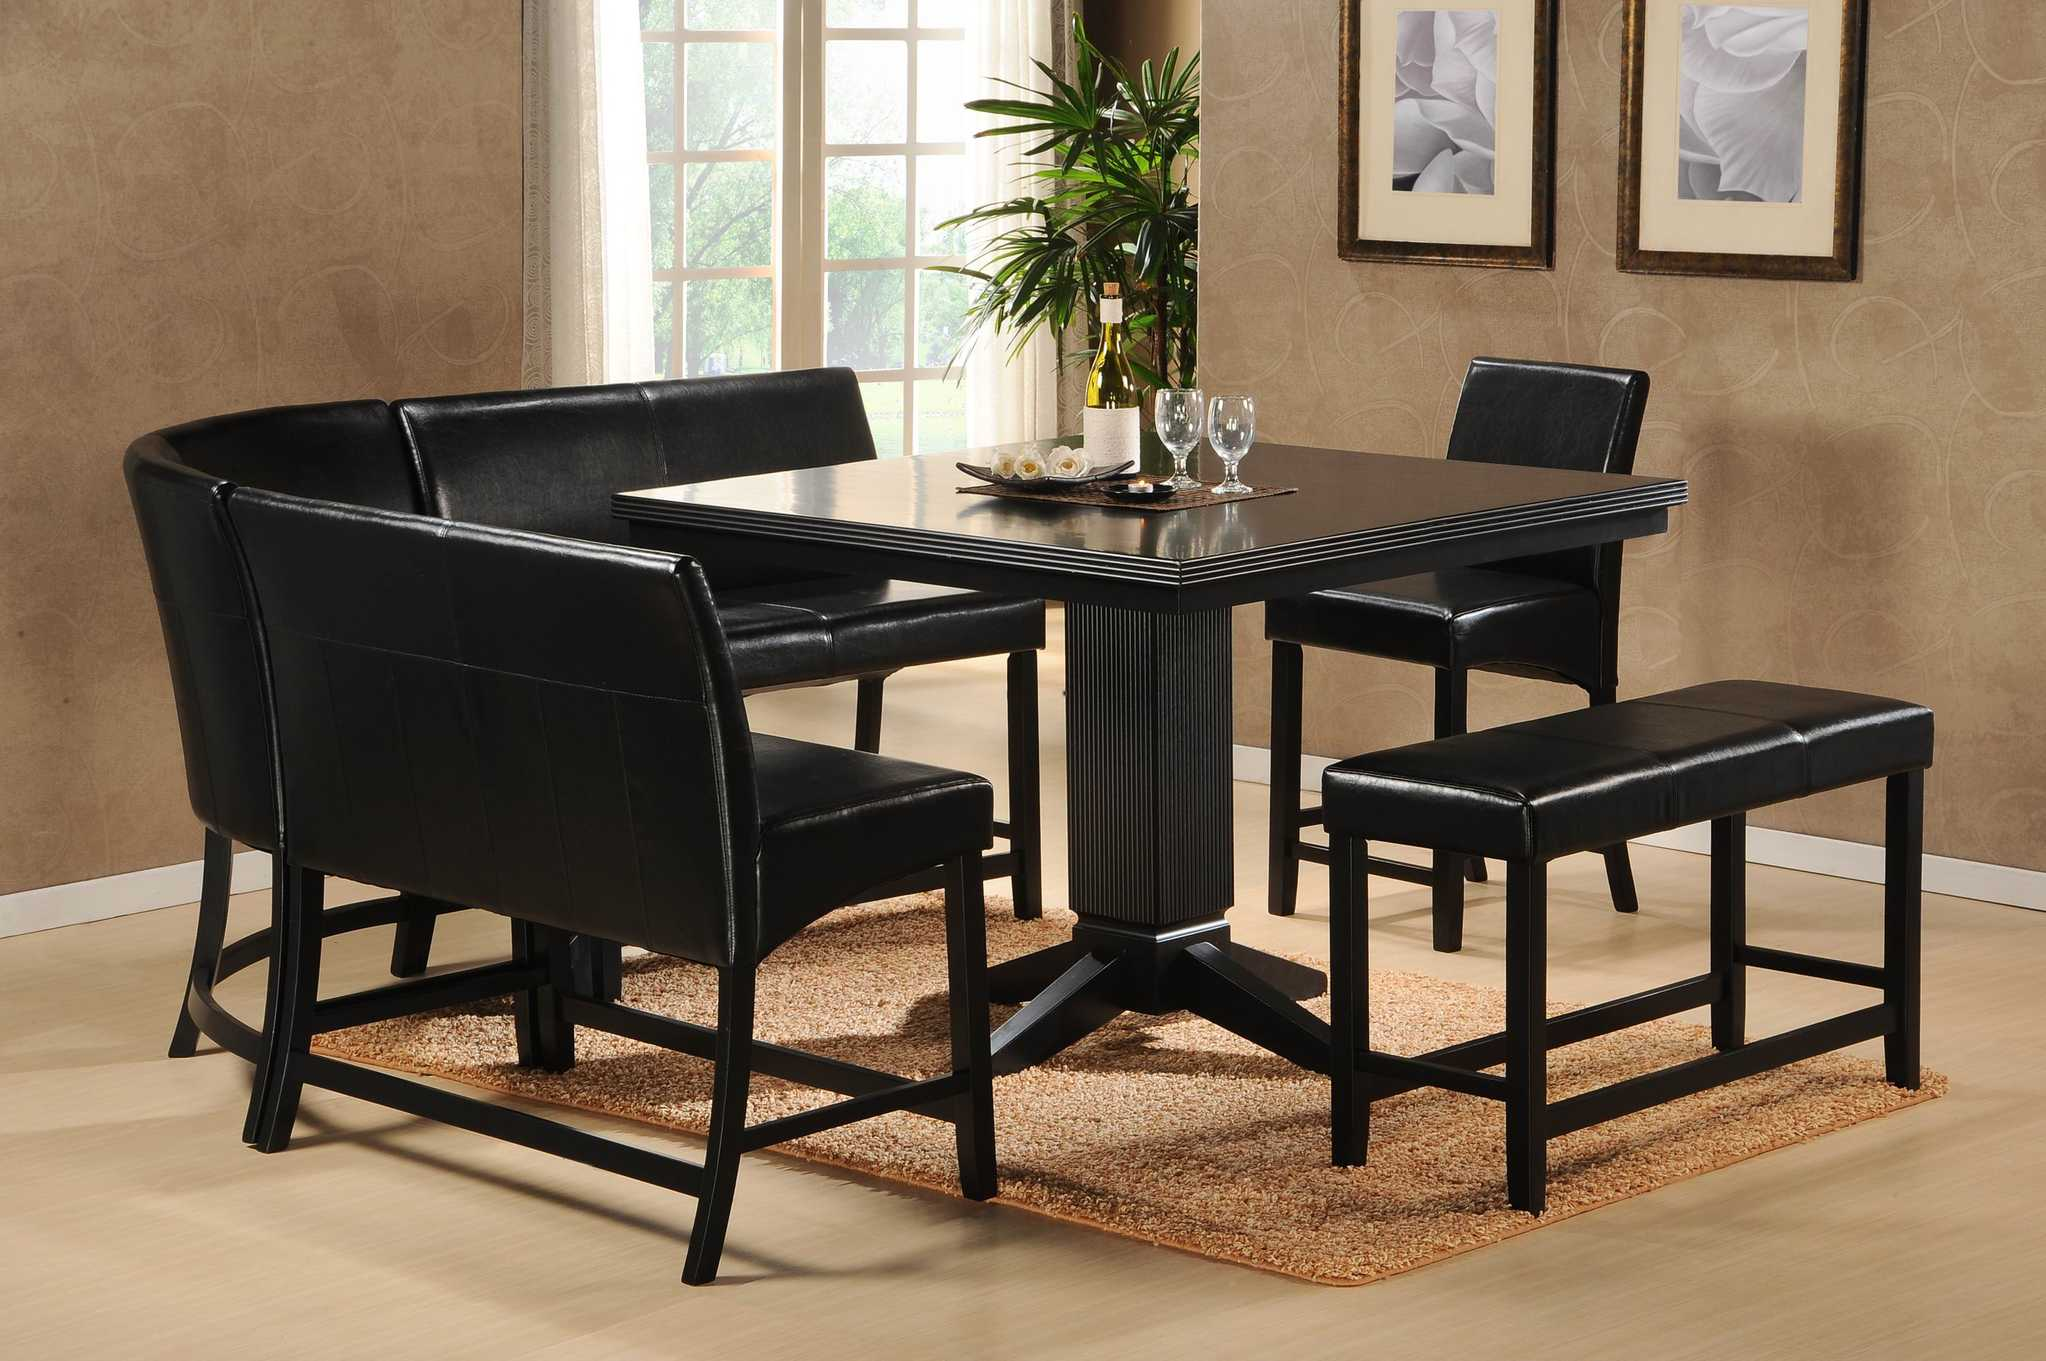 Cheap Dining Room Table Set Home Design Ideas and